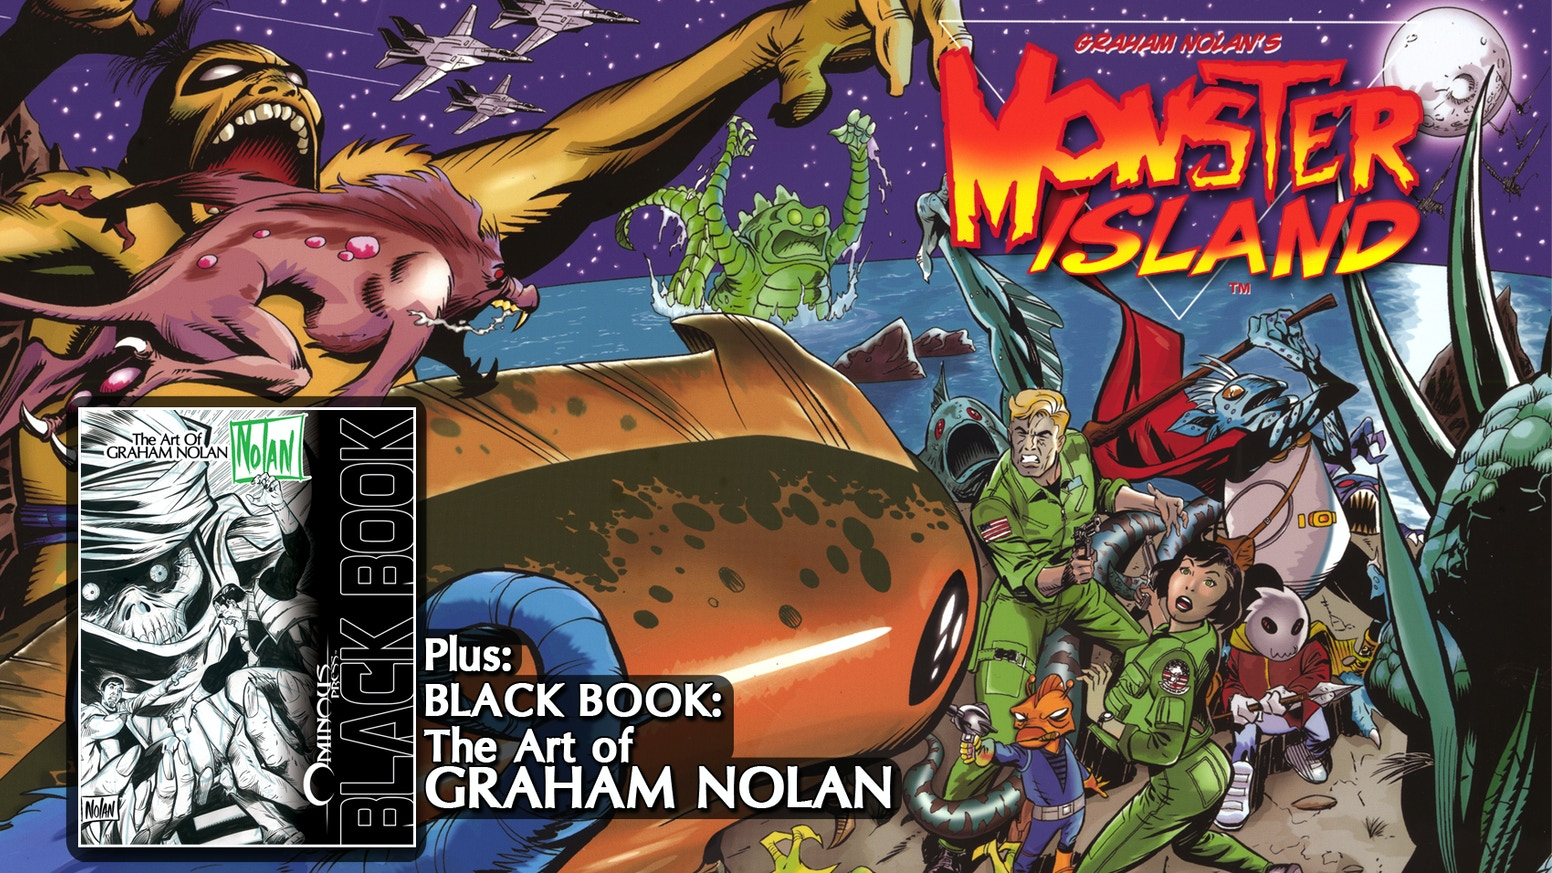 Monsters! Aliens! Classic adventure comic Monster Island, plus hardcover art book of rare drawings by Graham Nolan, co-creator of Bane!